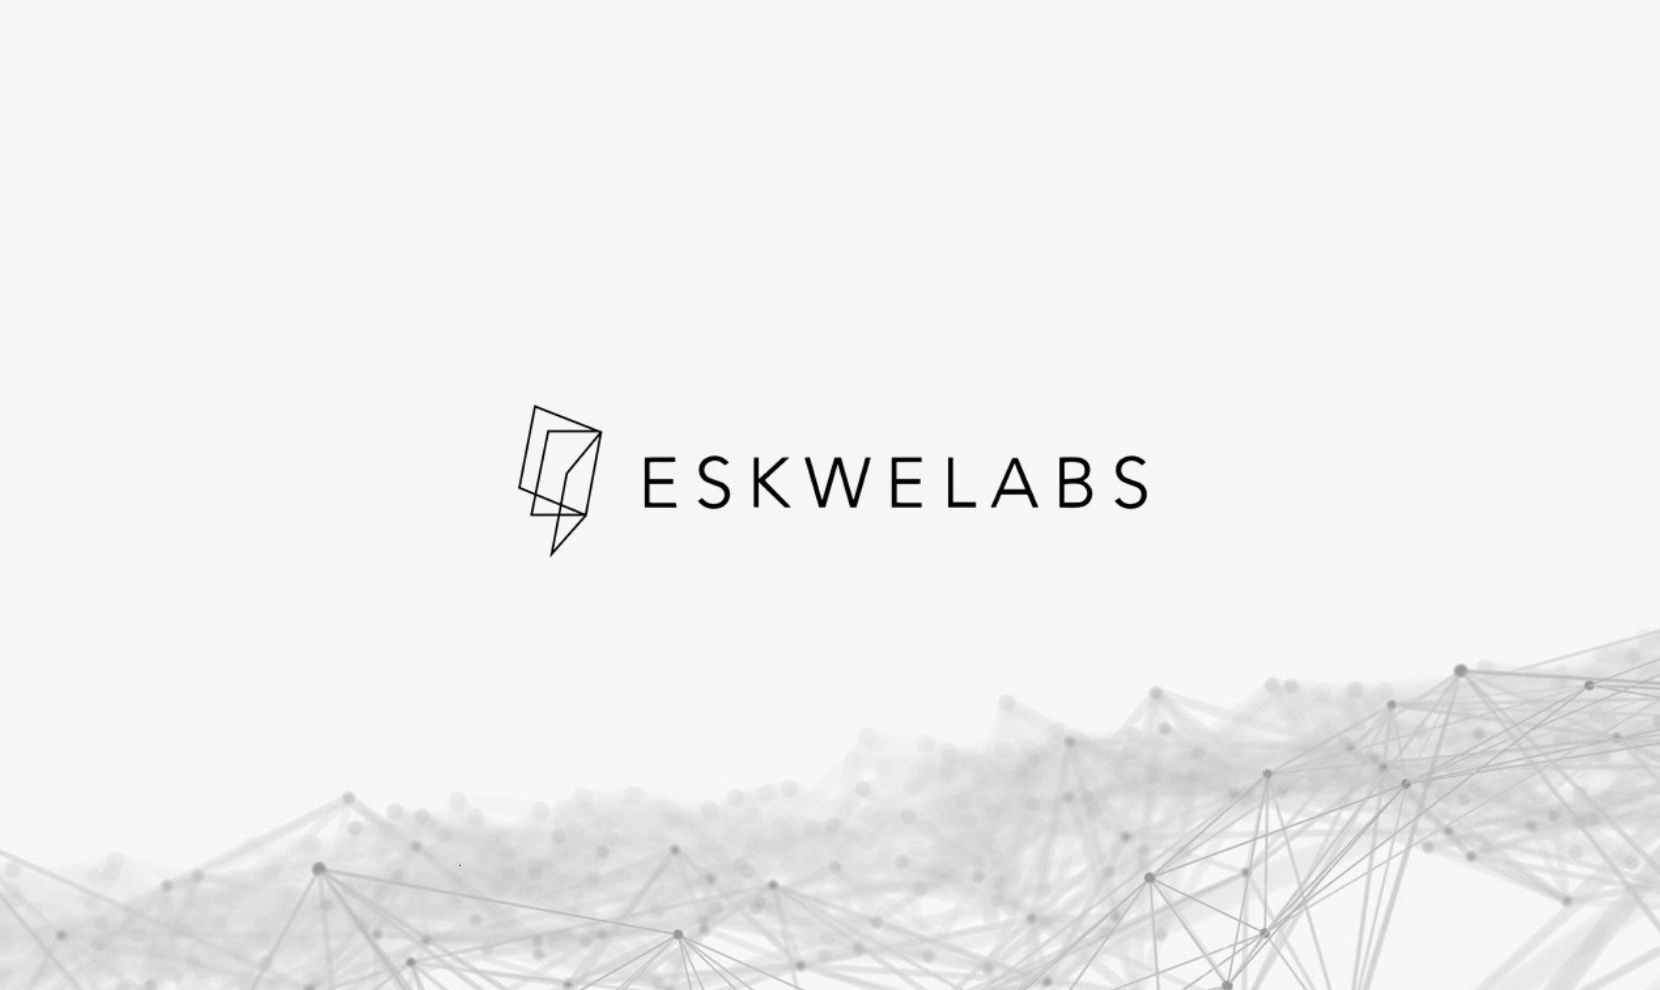 eskwelabs-is-the-only-philippine-company-to-participate-in-the-eduspaze-accelerator-program